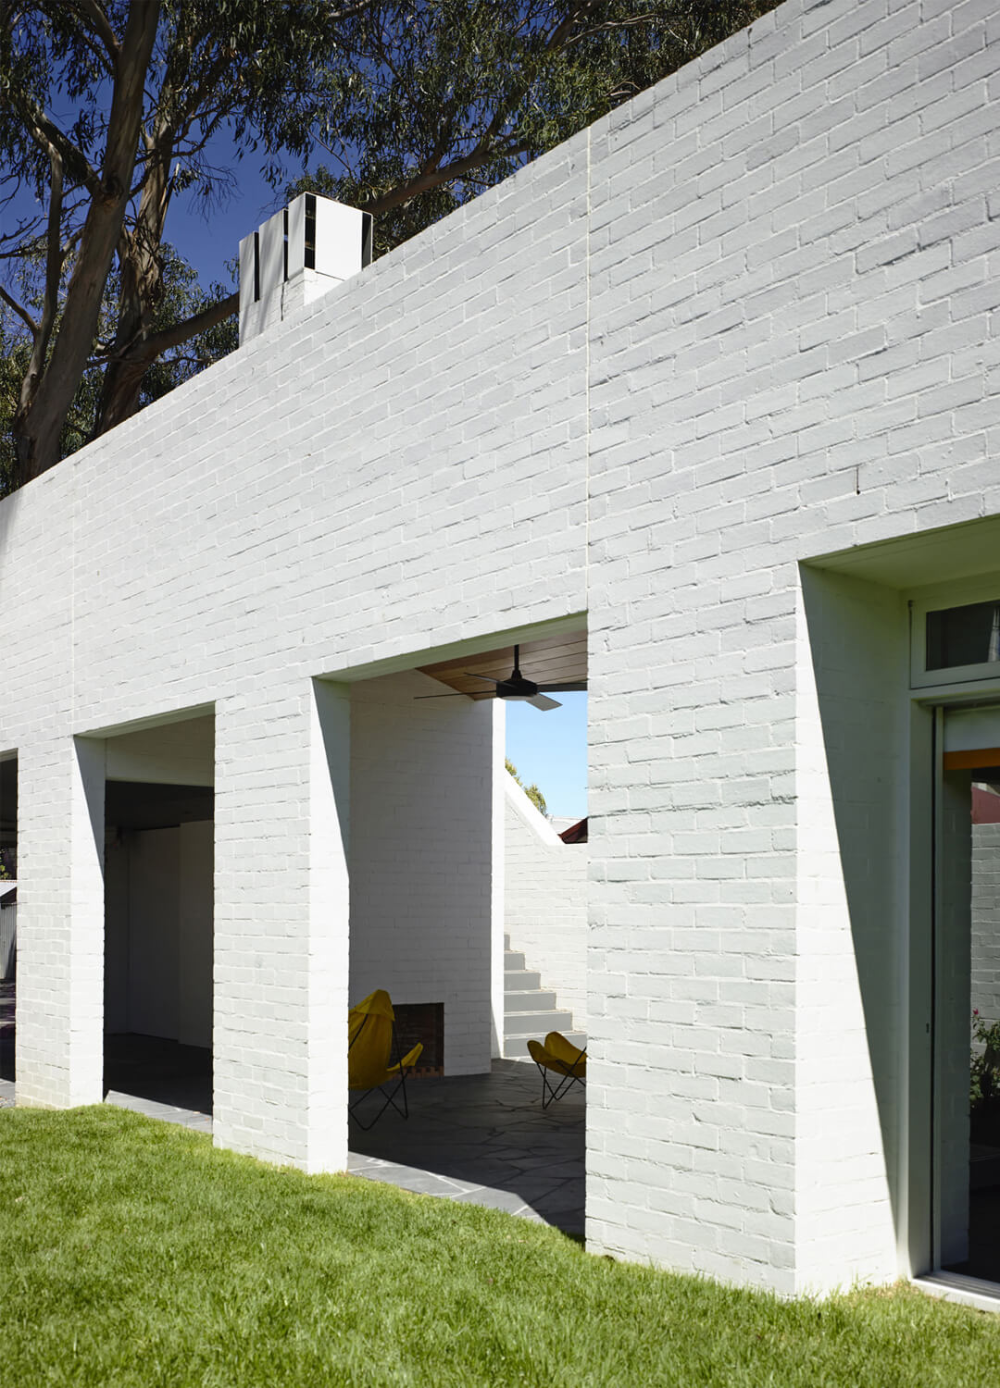 Alterations Additions Park Lane House By Kennedy Nolan Spaces Est Living In 2020 White Brick Houses Exterior Brick White Brick Walls